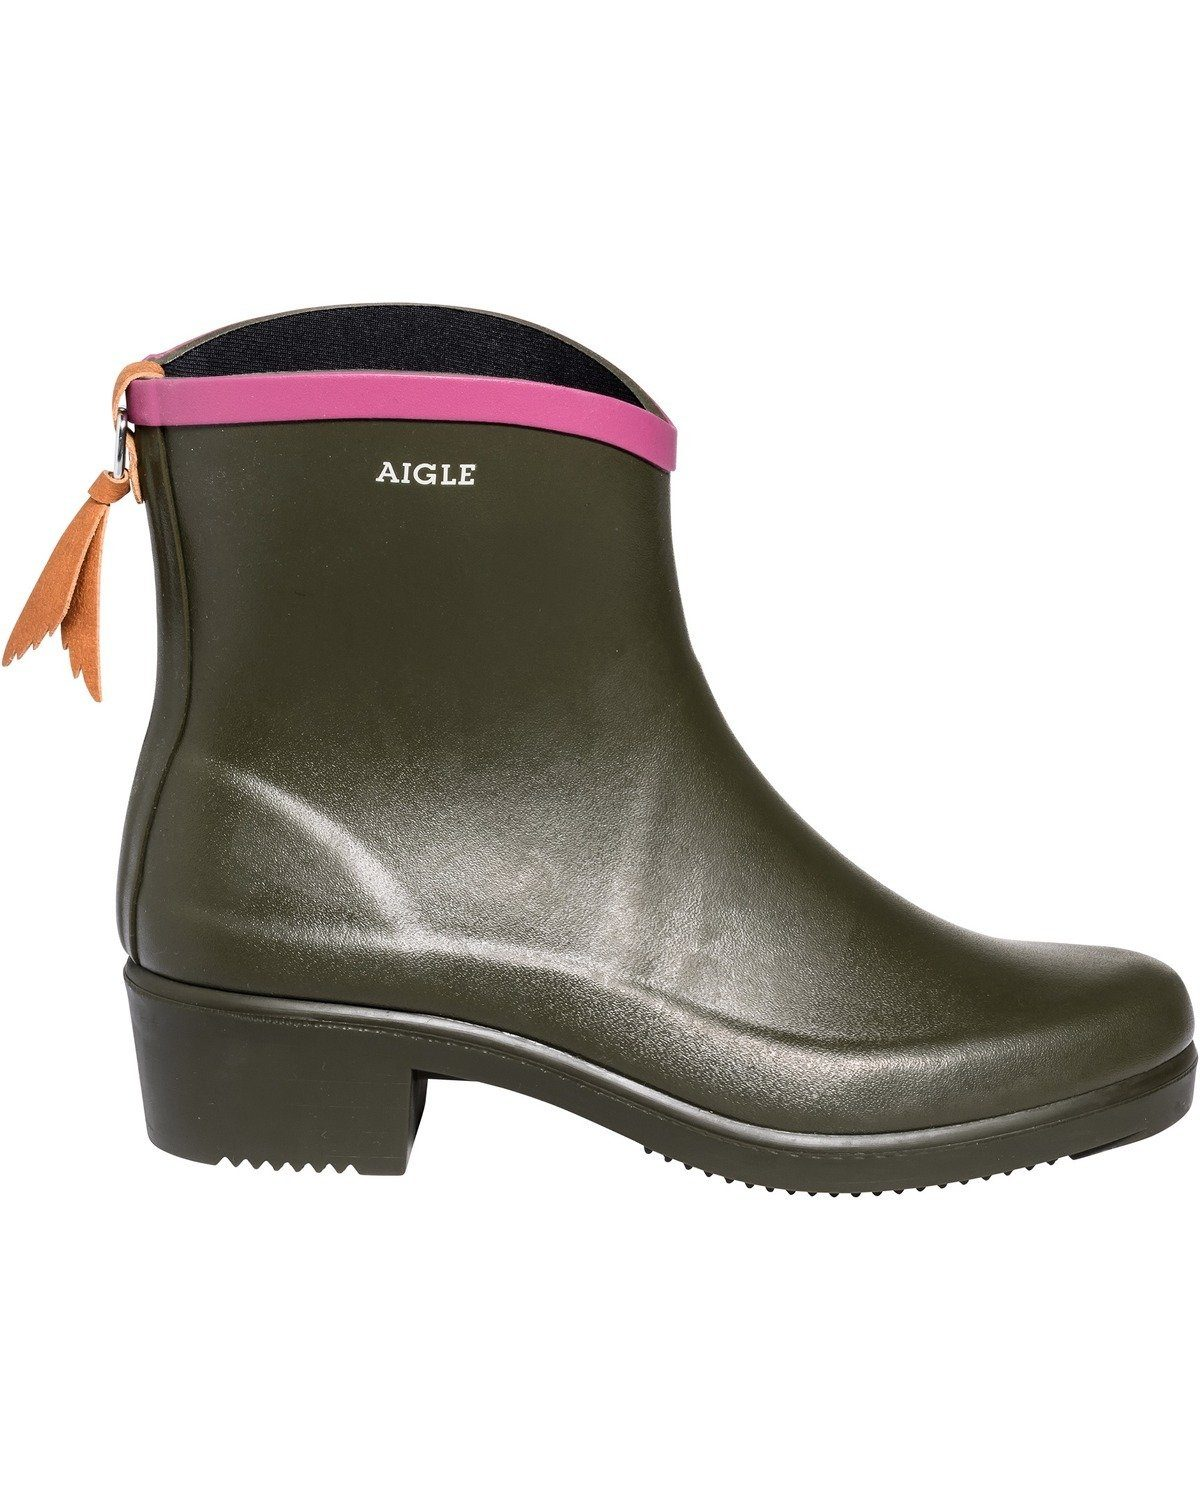 Aigle Gummistiefel Miss Juliette Bottillon kaufen  Khaki#ft5_slash#Pink